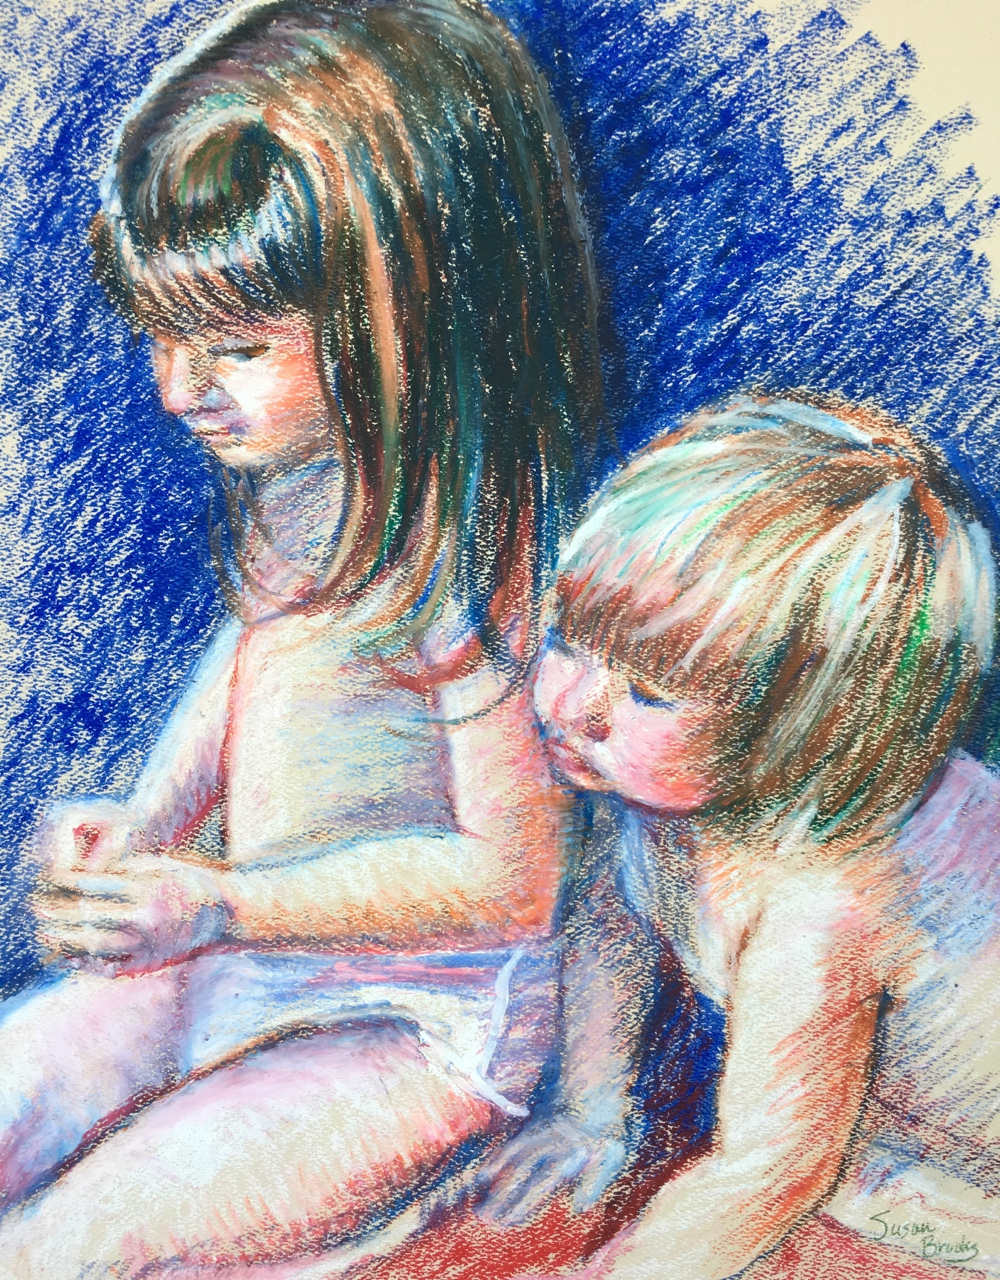 """Keeping Up with Big Sister"" by Susan Brooks, 14x11in, pastel on paper (2017)"